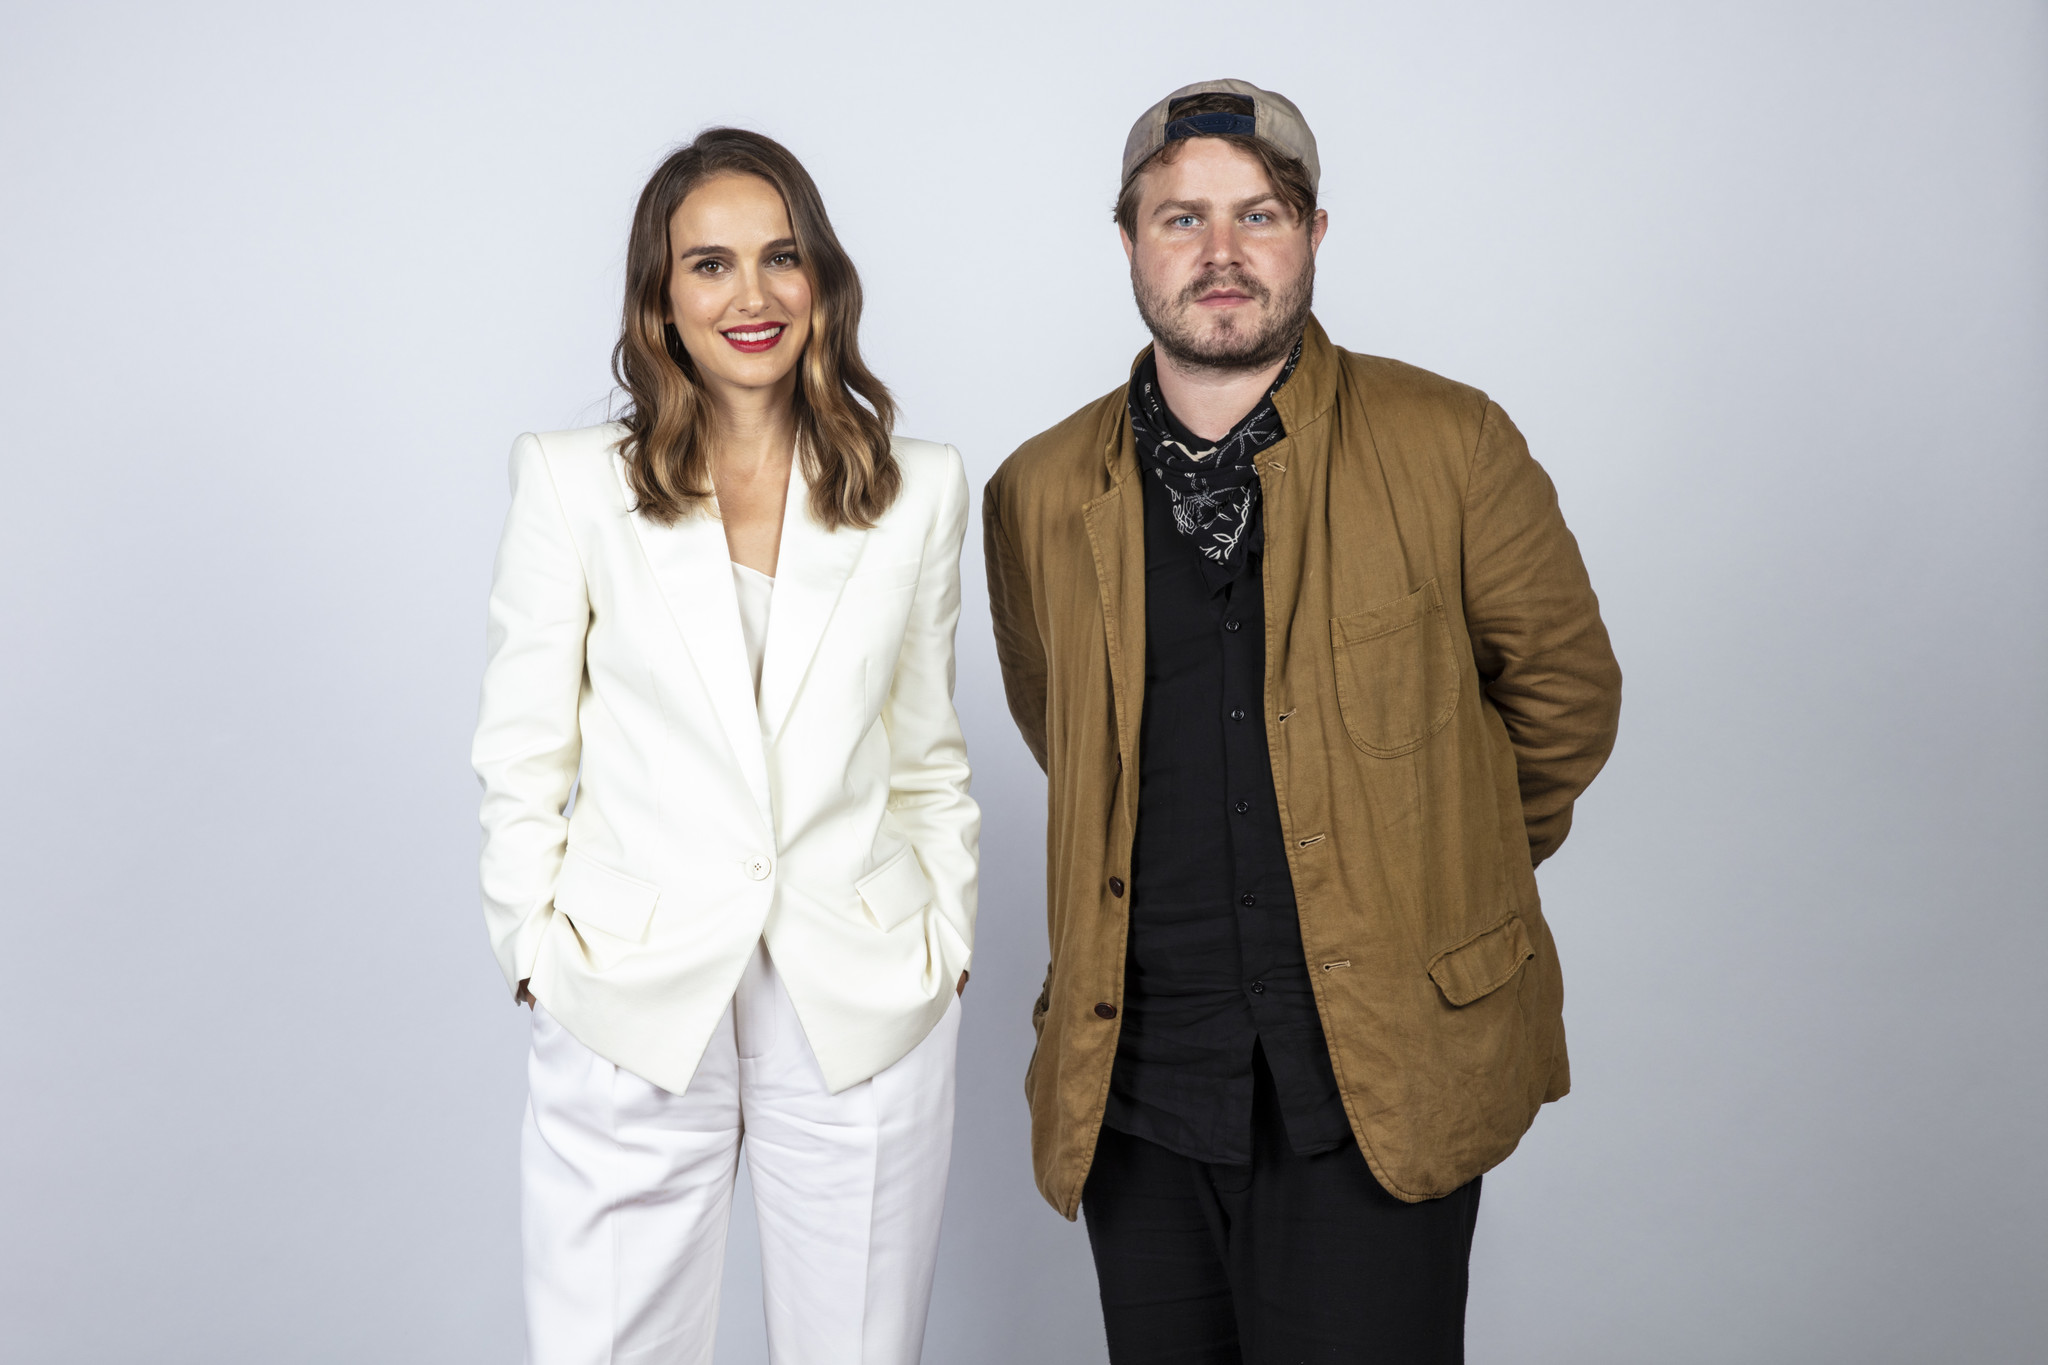 TORONTO, ONT. — SEPTEMBER 08, 2018-- Actress Natalie Portman, and director Brady Corbet, from the